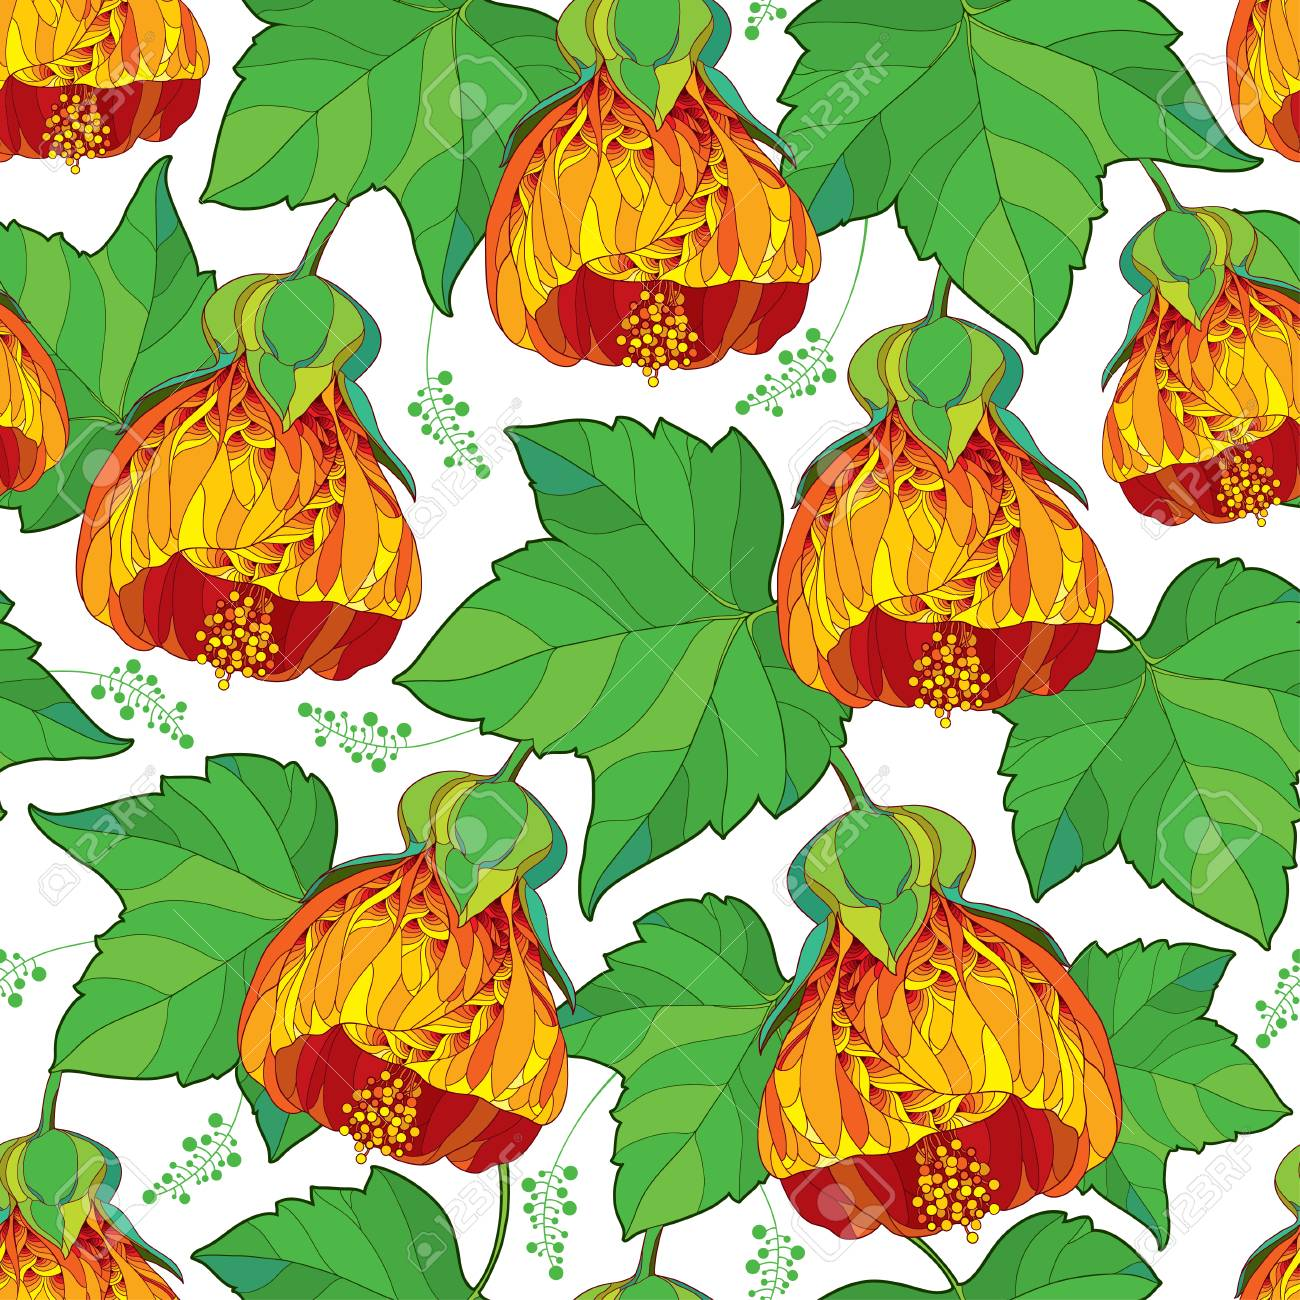 Seamless pattern with outline orange Abutilon or Indian mallow flower and ornate green leaf on the white background. Floral background in contour style with tropic Abutilon for summer design. - 104487940